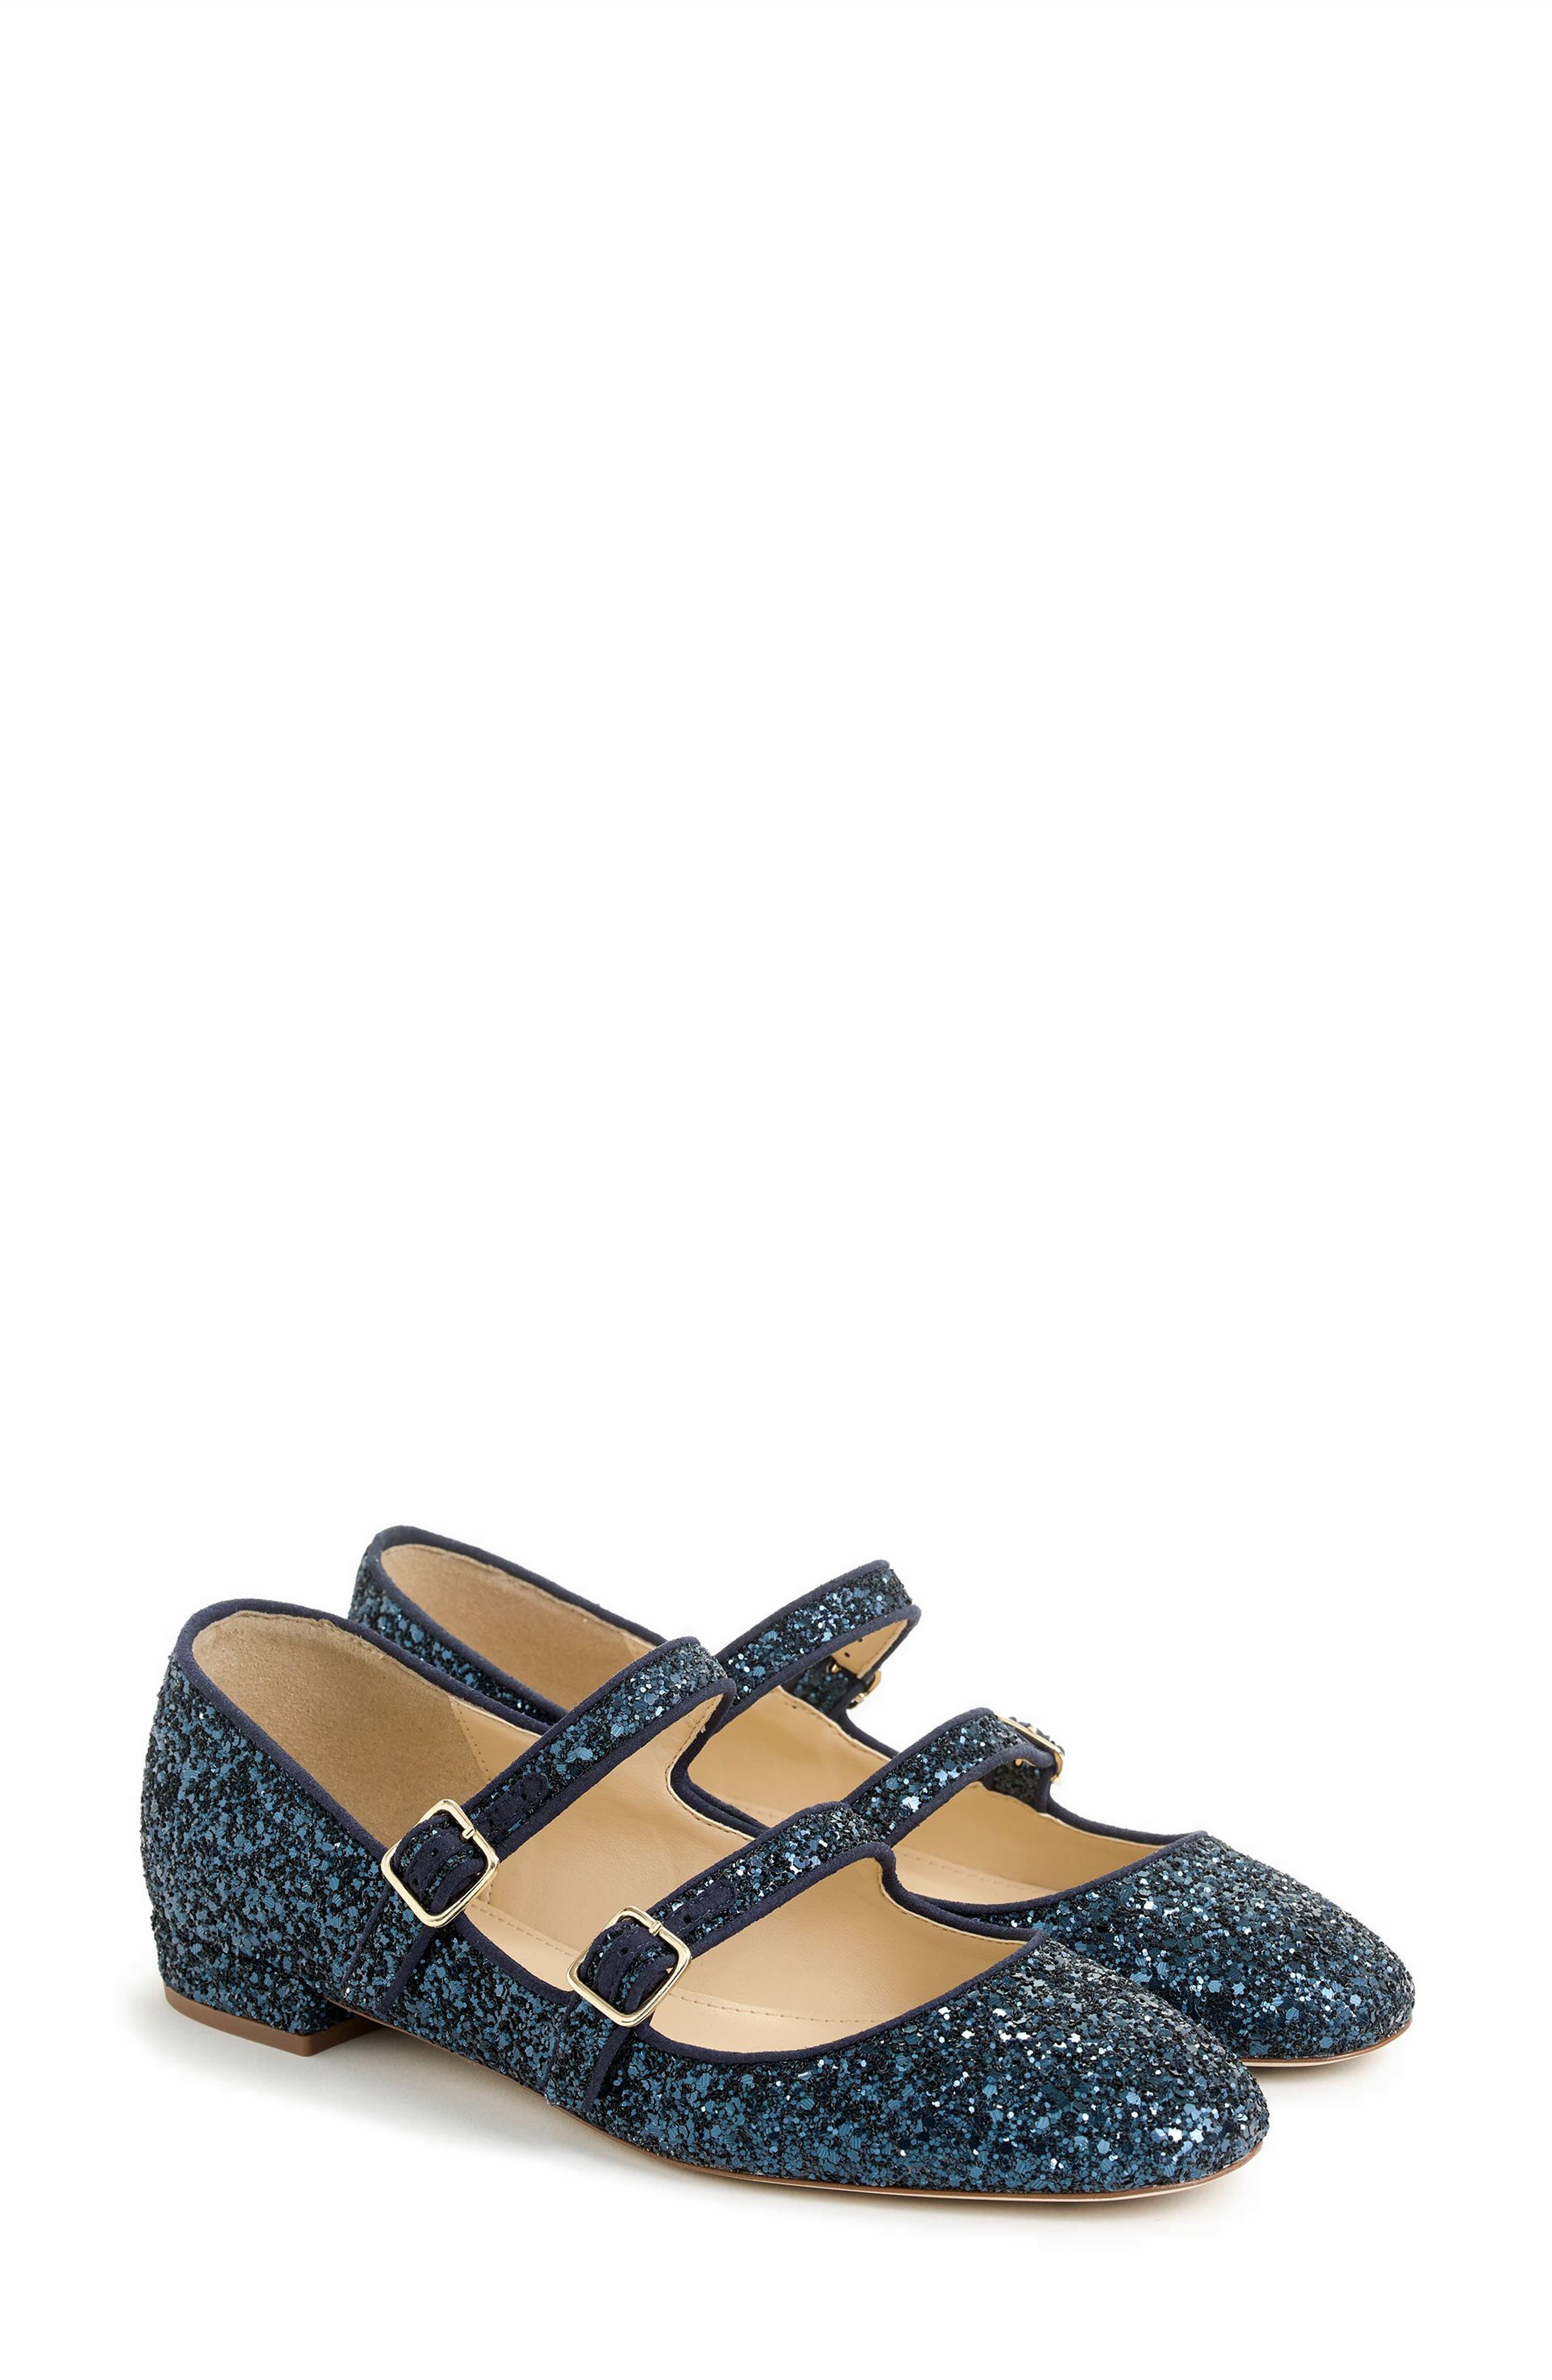 J.Crew Multistrap Mary Jane Flat,                             Main thumbnail 1, color,                             Navy Glitter Fabric